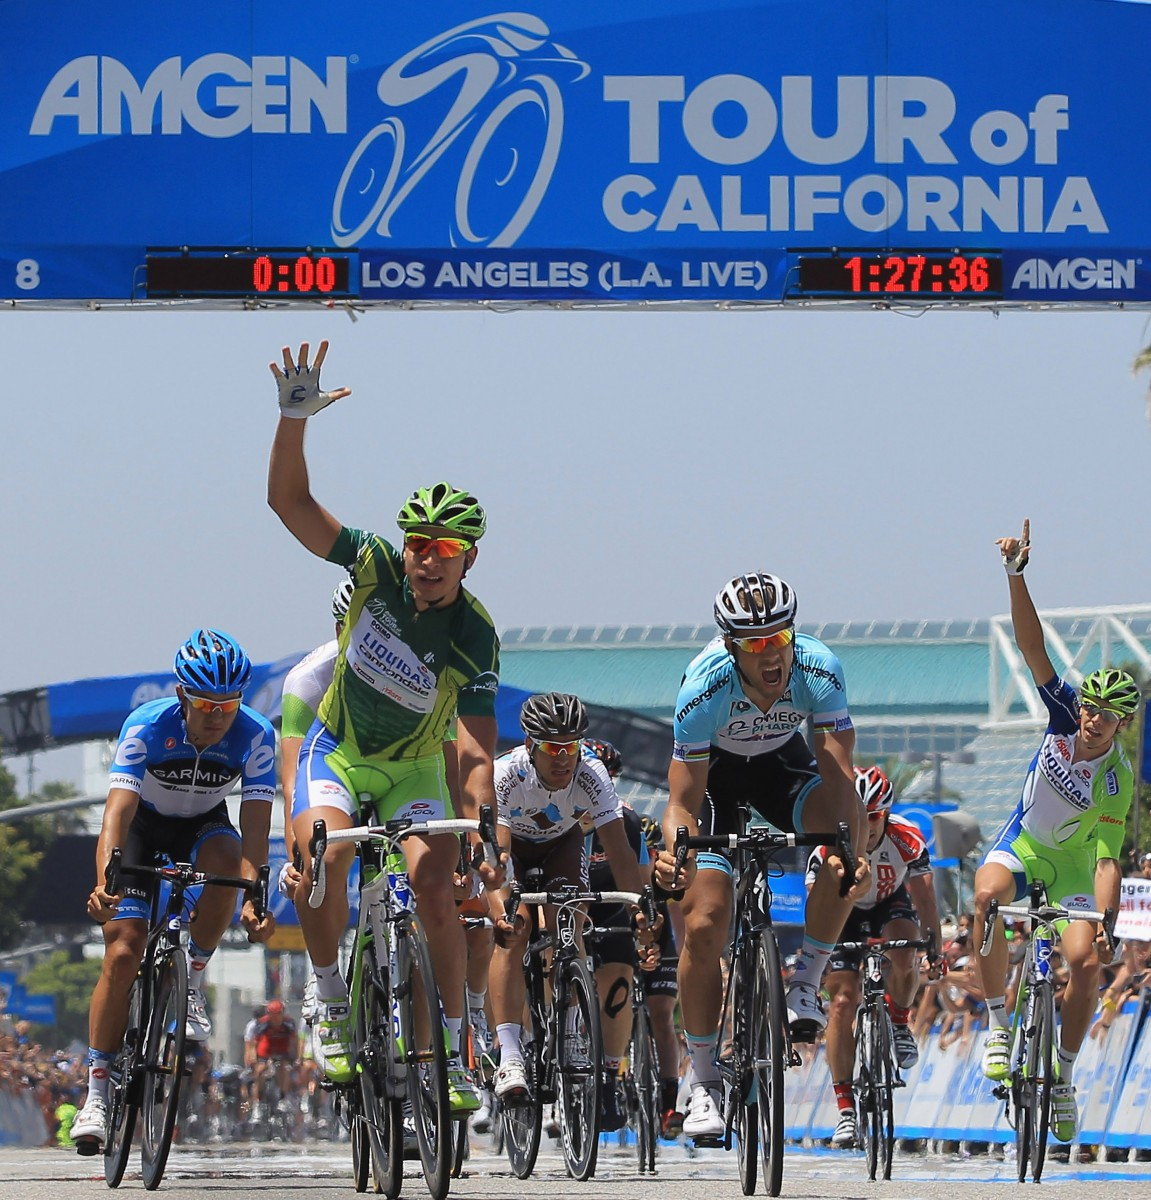 Peter Sagan (2L) of Slovakia of Liquigas-Cannondale celebrates his fifth stage victory in Stage Eight of the Amgen Tour of California. (Doug Pensinger/Getty Images)